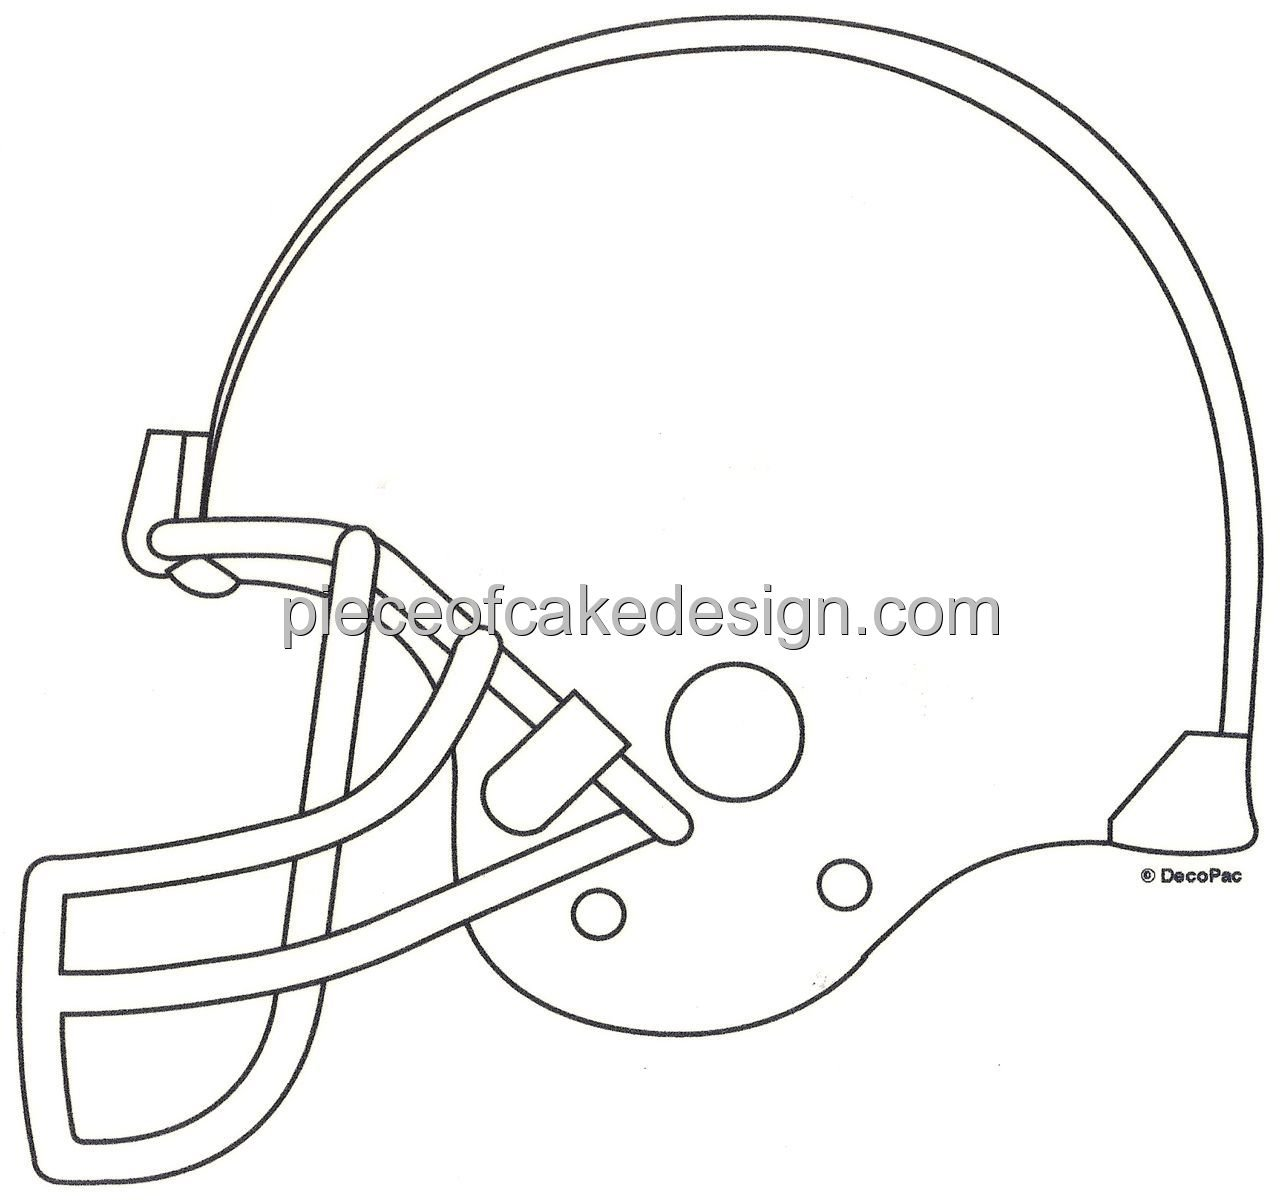 football helmet coloring pages - photo#32